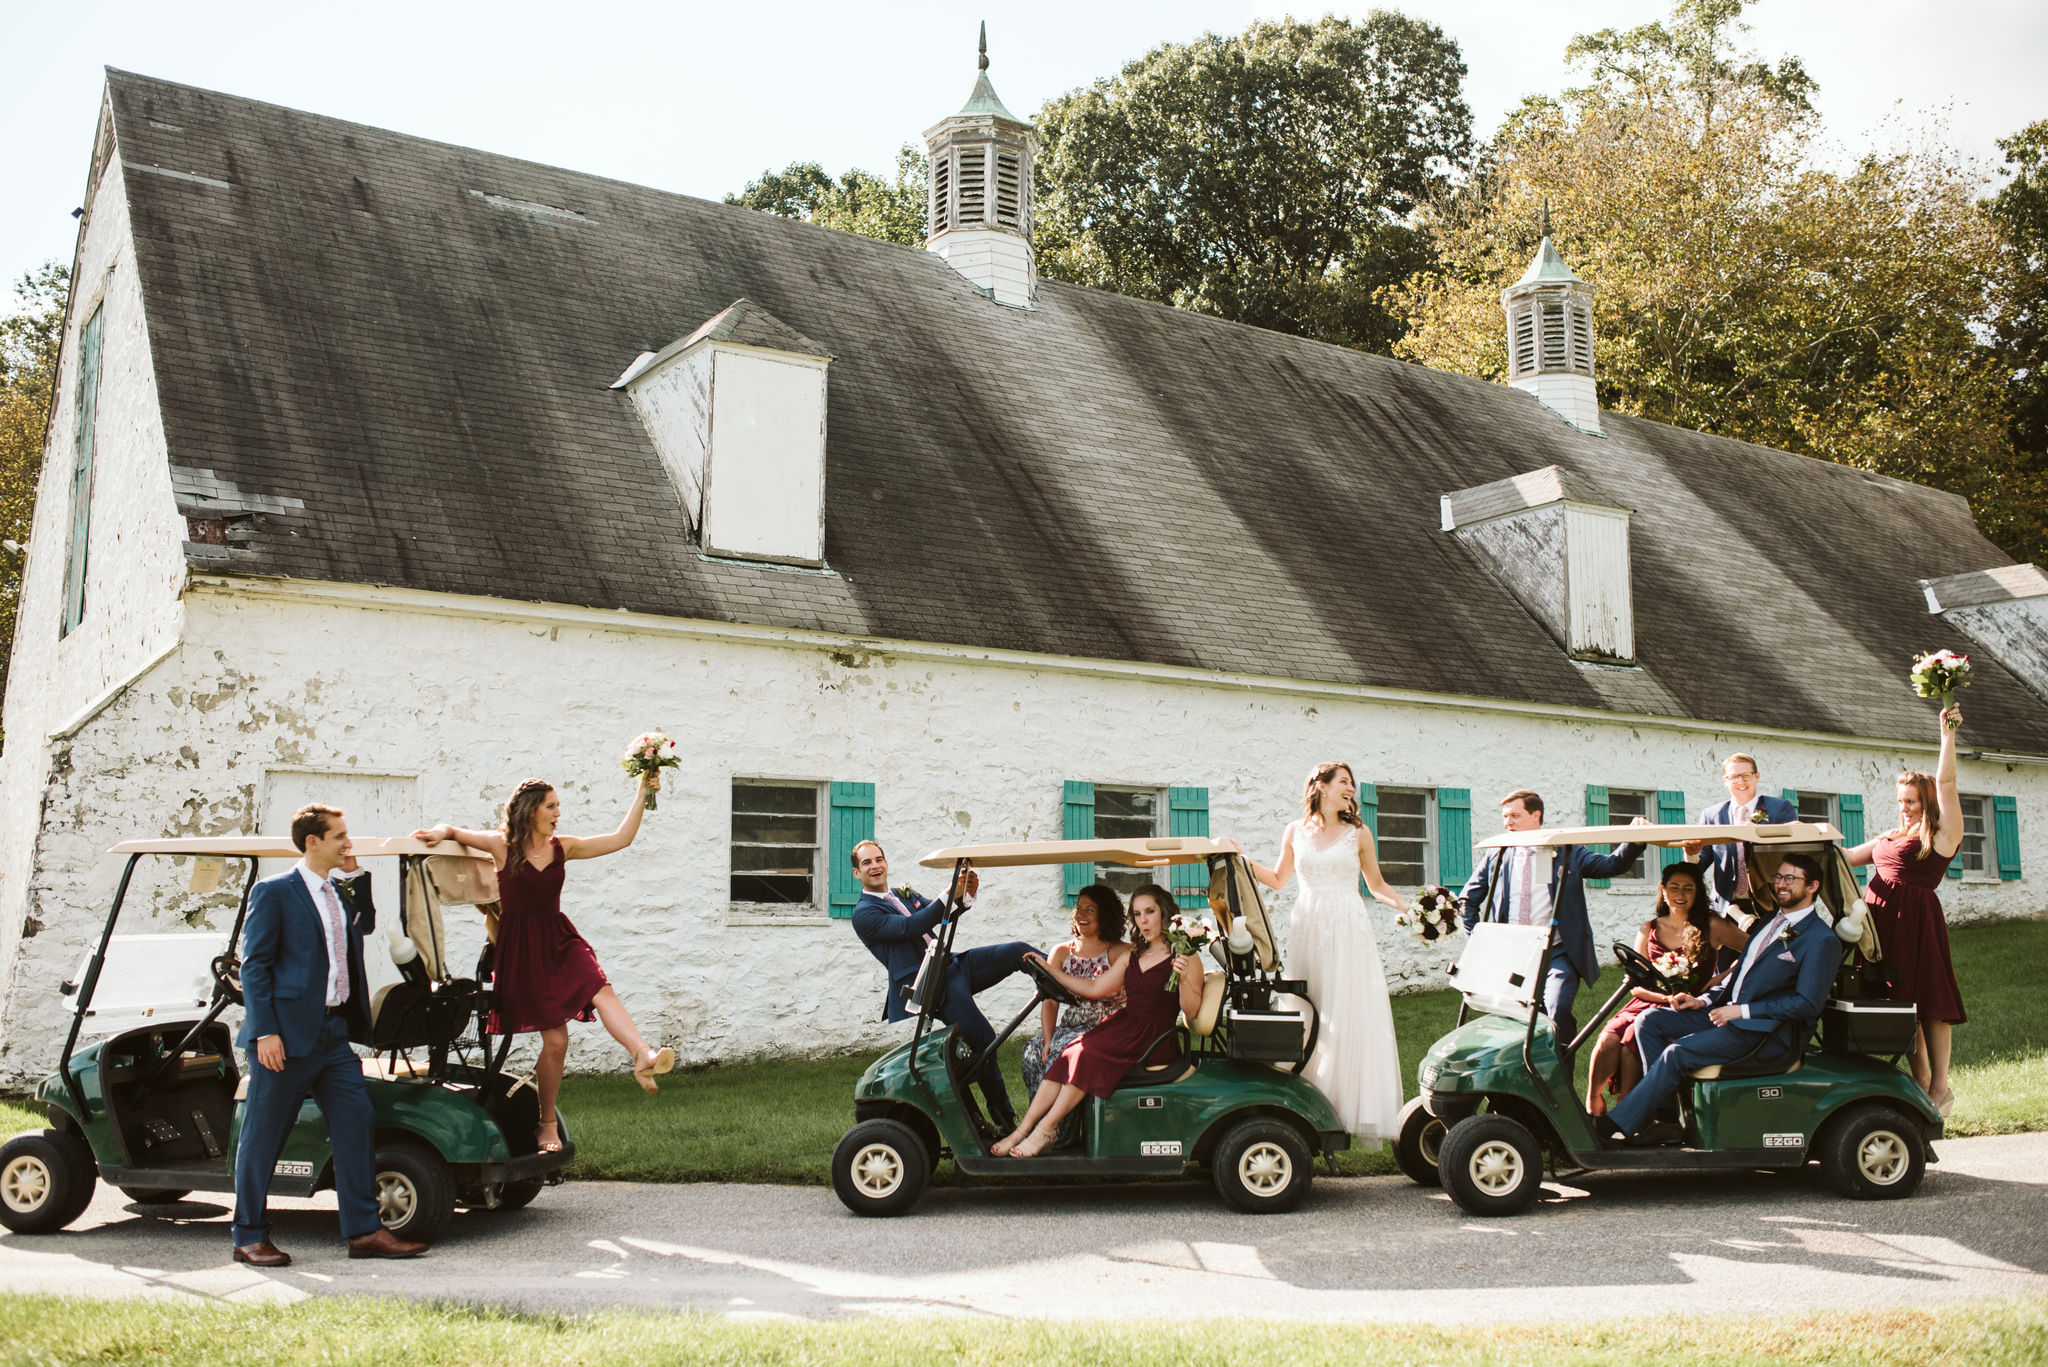 Phoenix Maryland, Baltimore Wedding Photographer, Eagle's Nest Country Club, Classic, Romantic, Fun Photo of Bridal Party on Golf Carts Outside Barn, Silly Portrait, Burgundy Brideside Bridesmaid Dresses